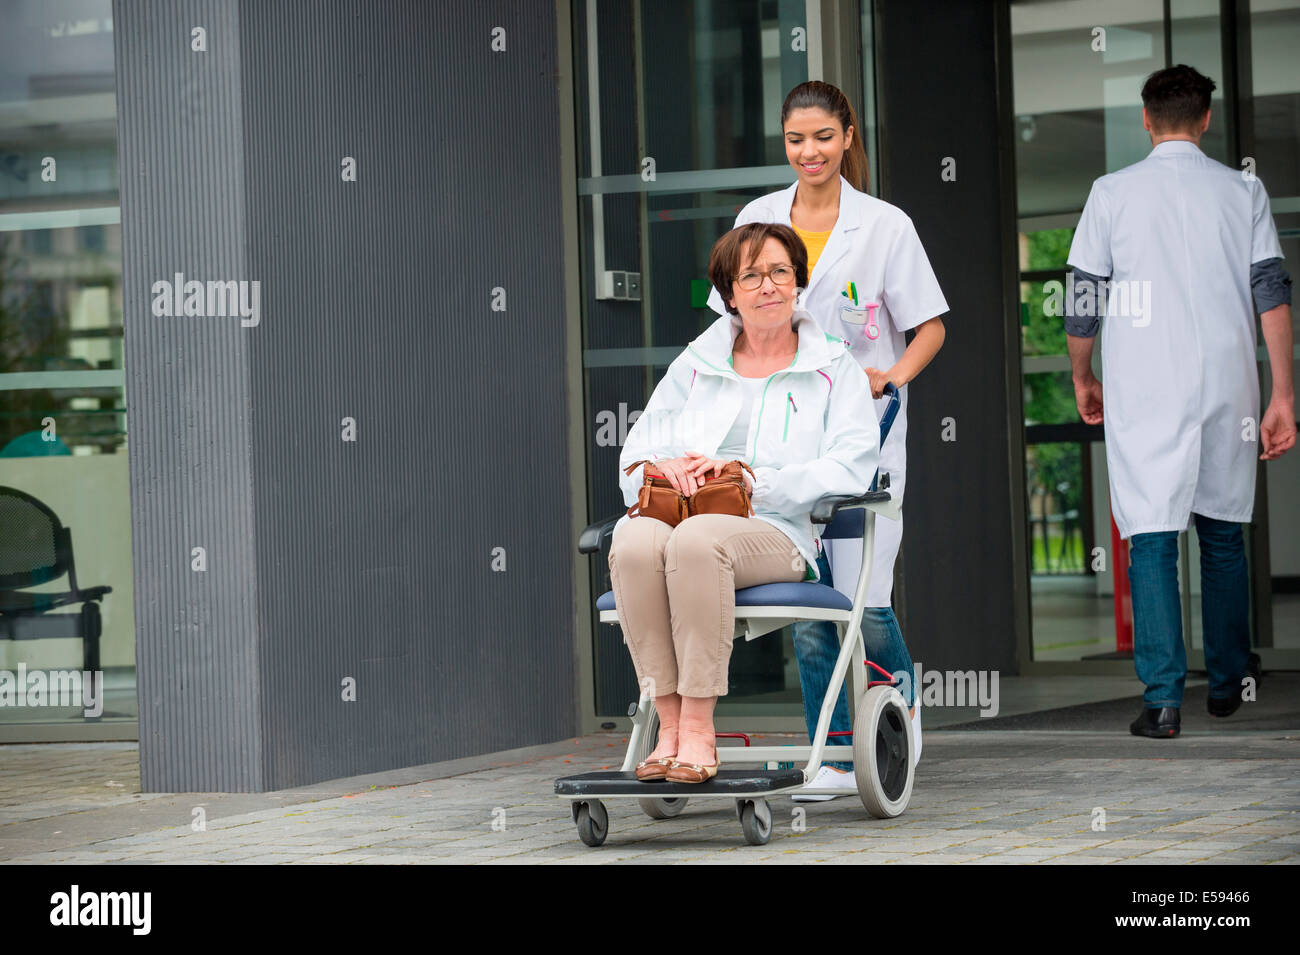 Female doctor pushing a patient sitting in a chair - Stock Image